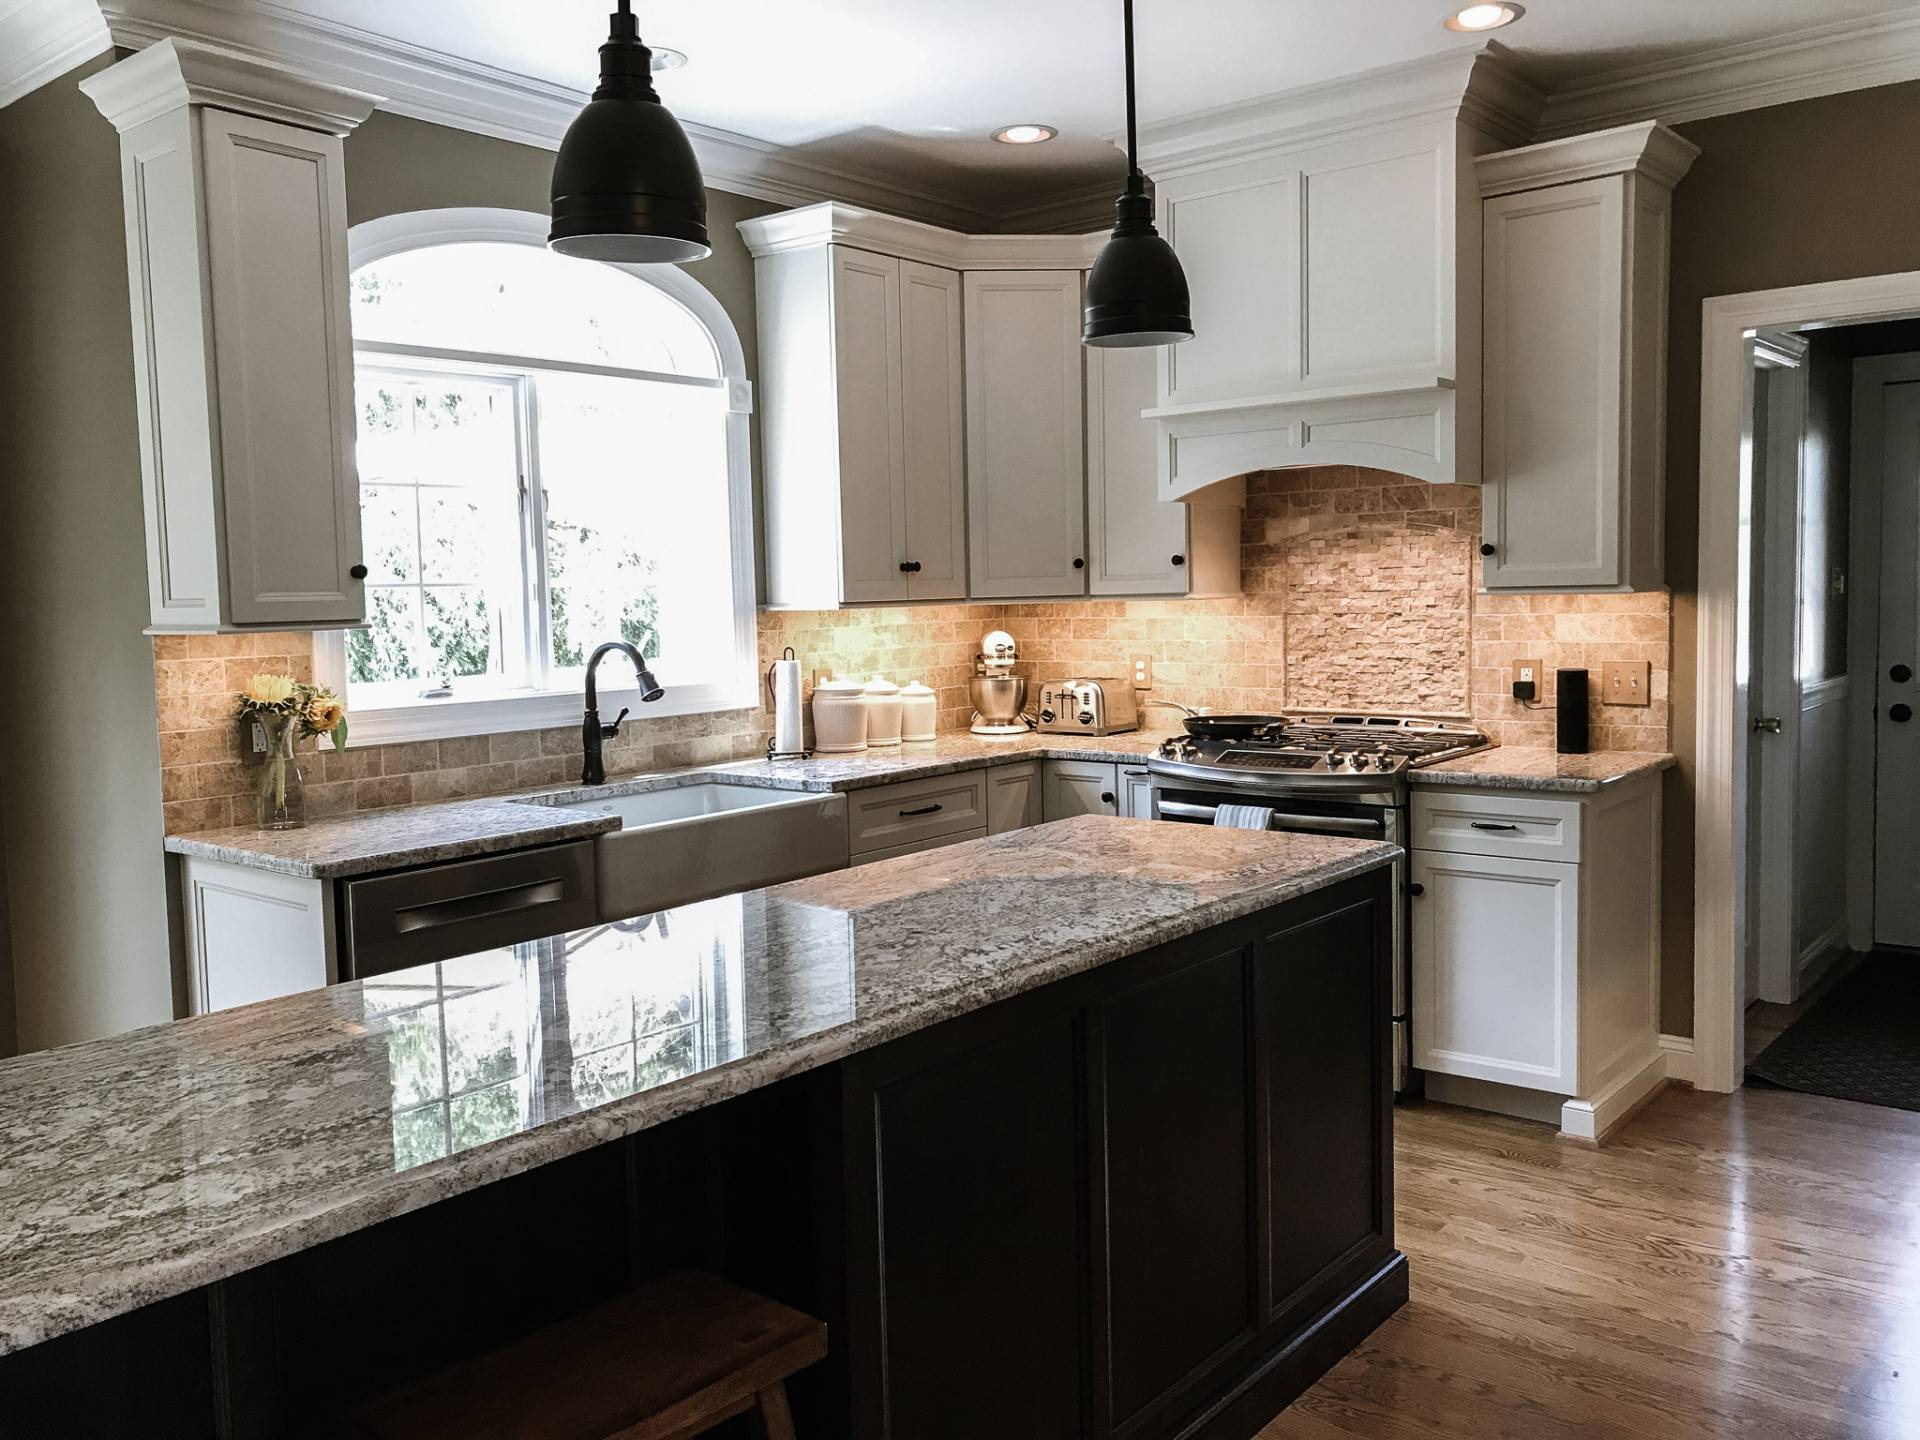 trending kitchen cabinet colors for 2020 5 cool cabinet on best colors for kitchen walls id=89401